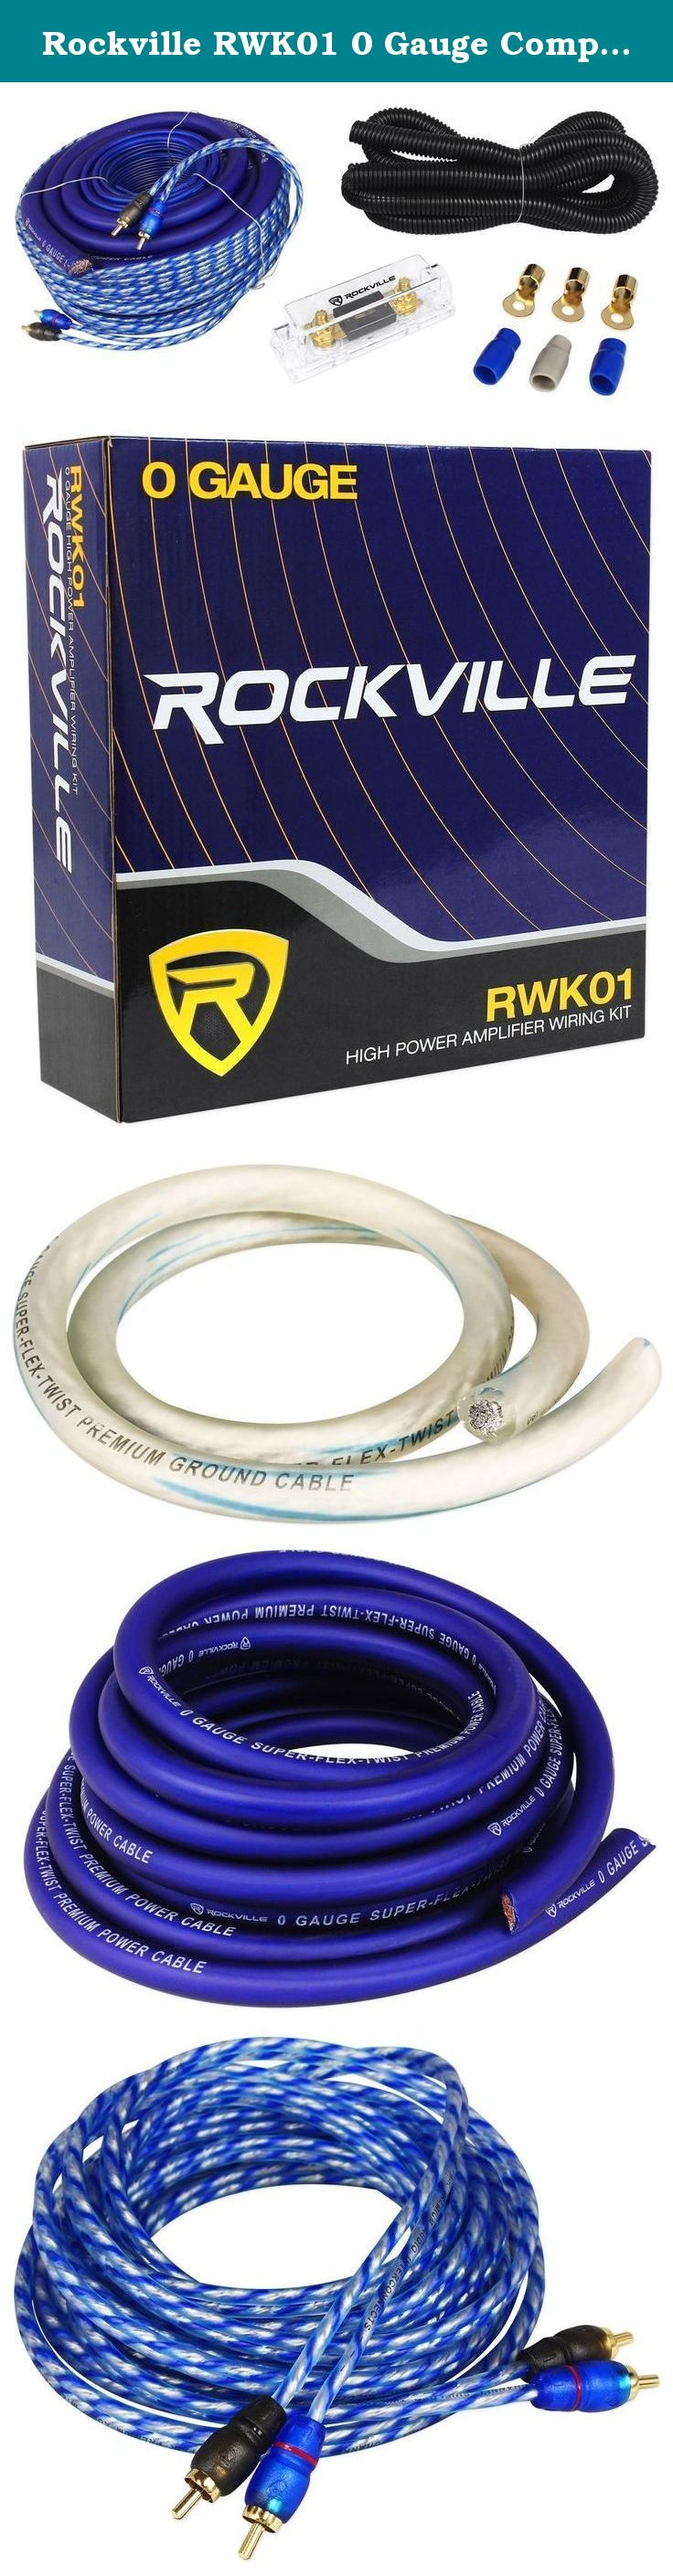 Rockville rwk01 0 gauge complete car amp wiring installation wire kit w rca s the